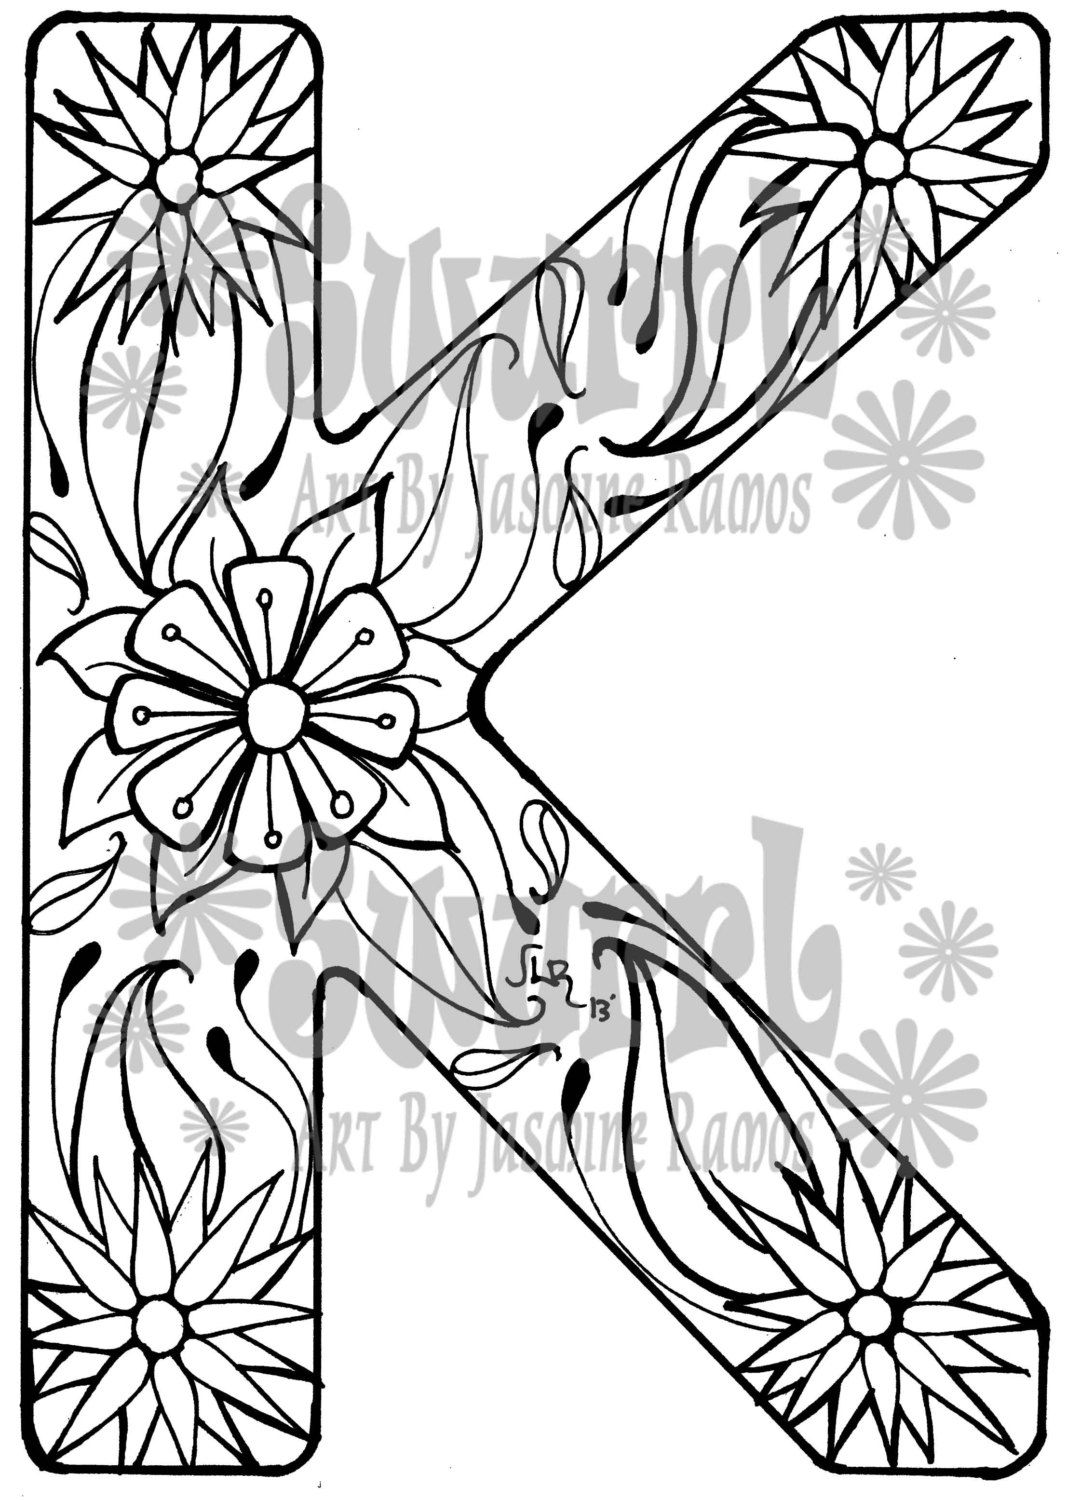 k coloring pages Letter K Coloring Pages Adult | name monograms | Pinterest  k coloring pages